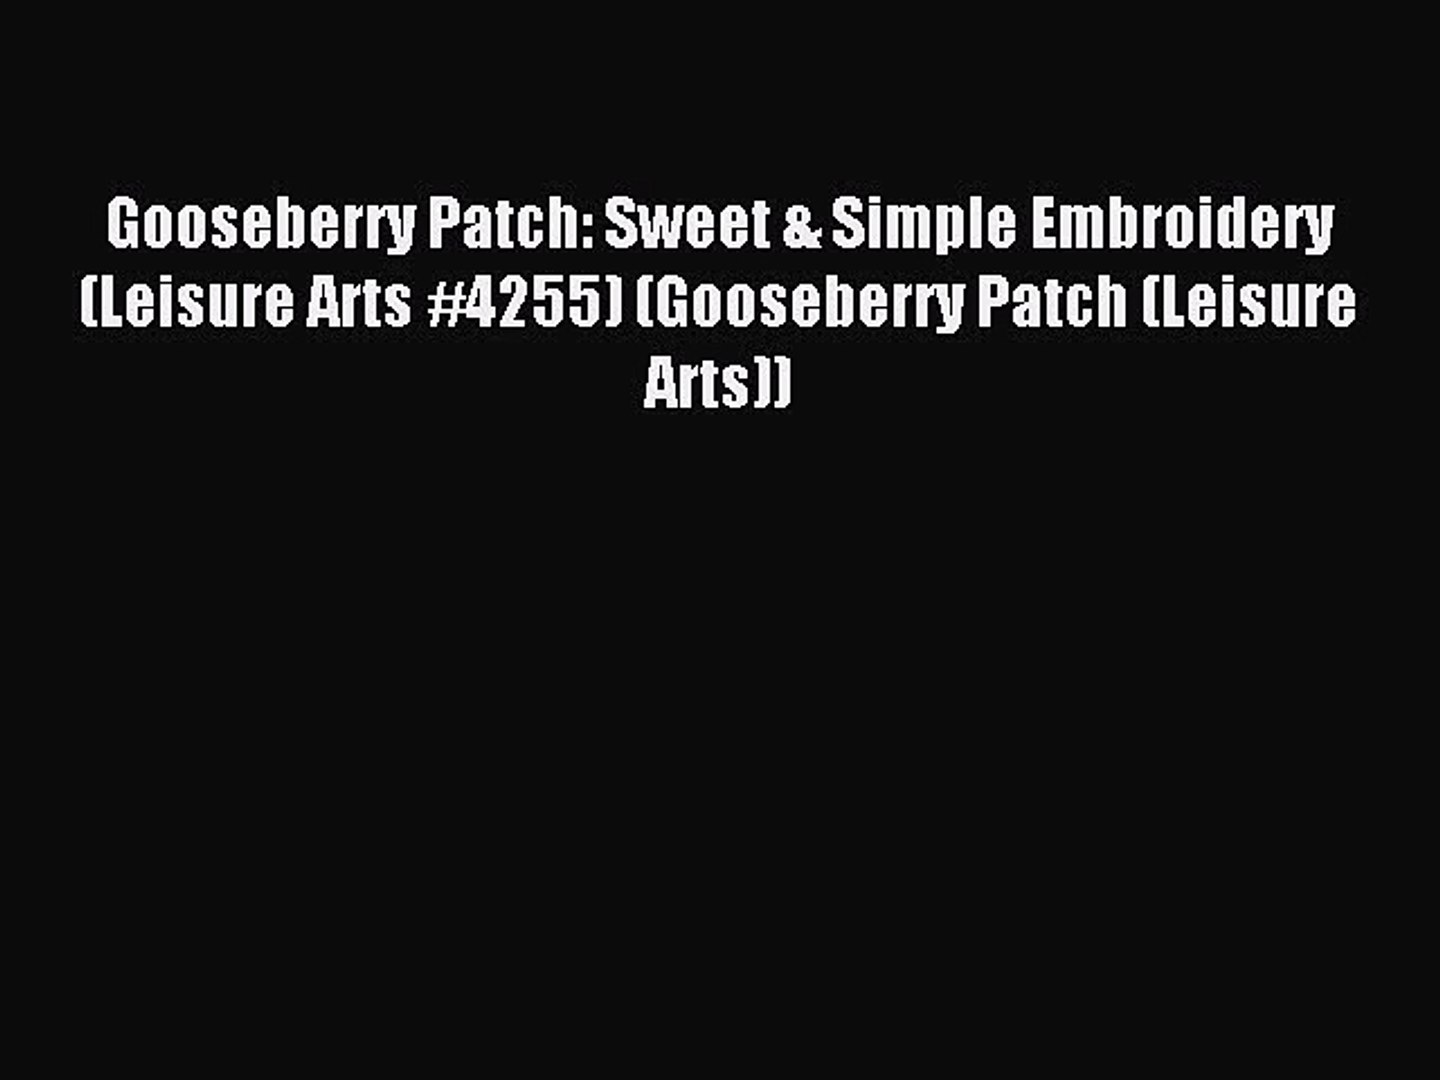 Gooseberry Patch: Sweet & Simple Embroidery (Leisure Arts #4255) (Gooseberry Patch (Leisure